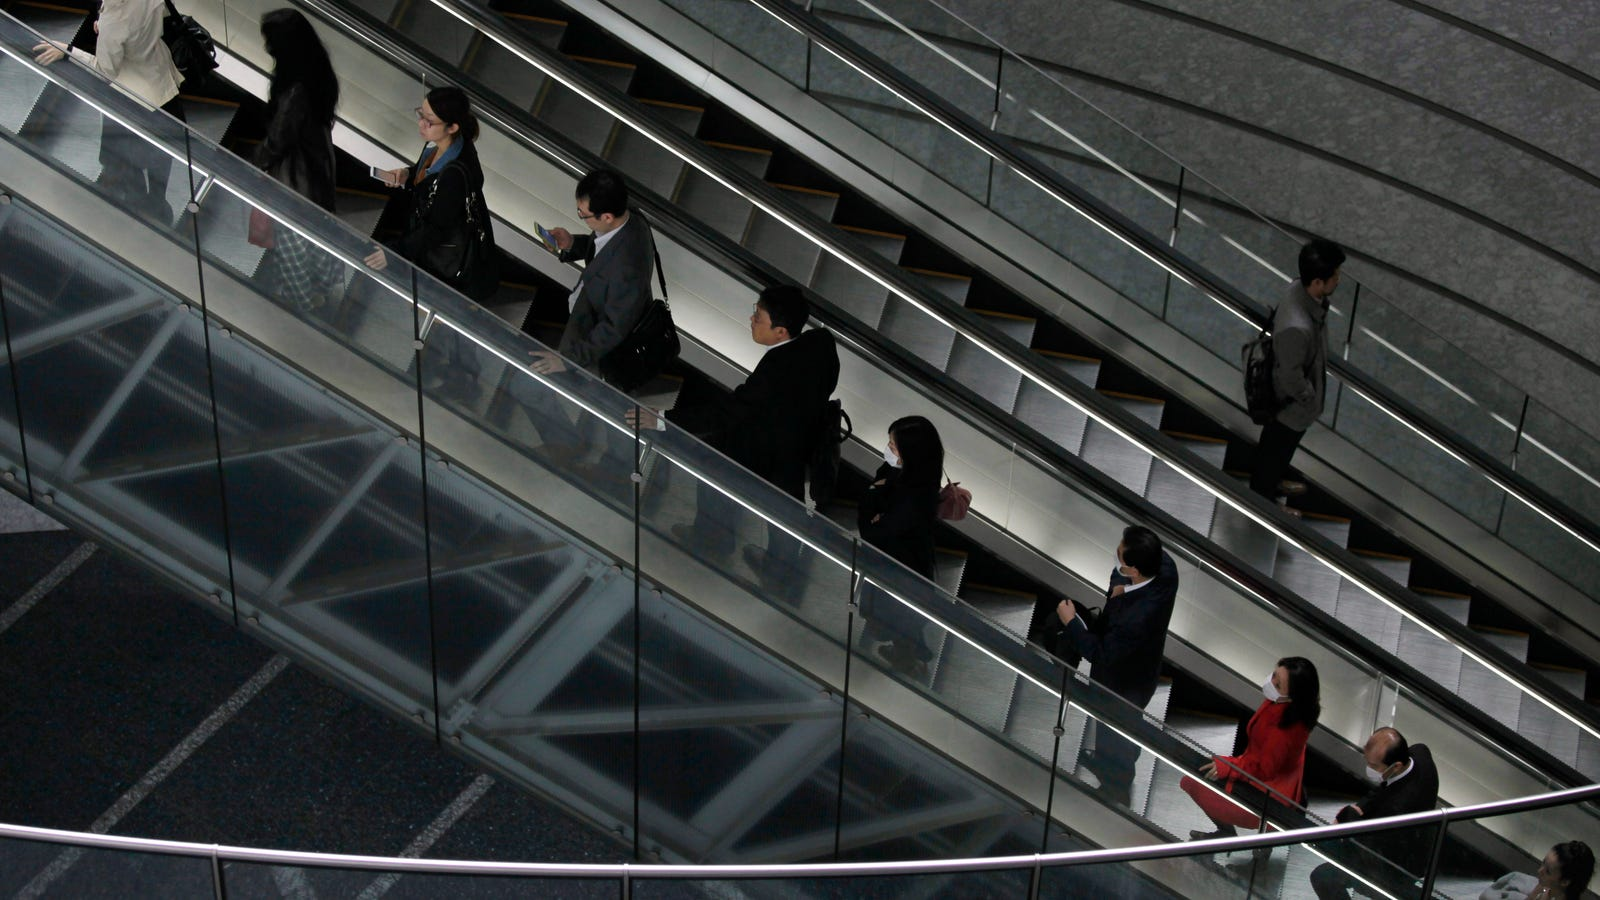 Its hard for japan to change its escalator manners